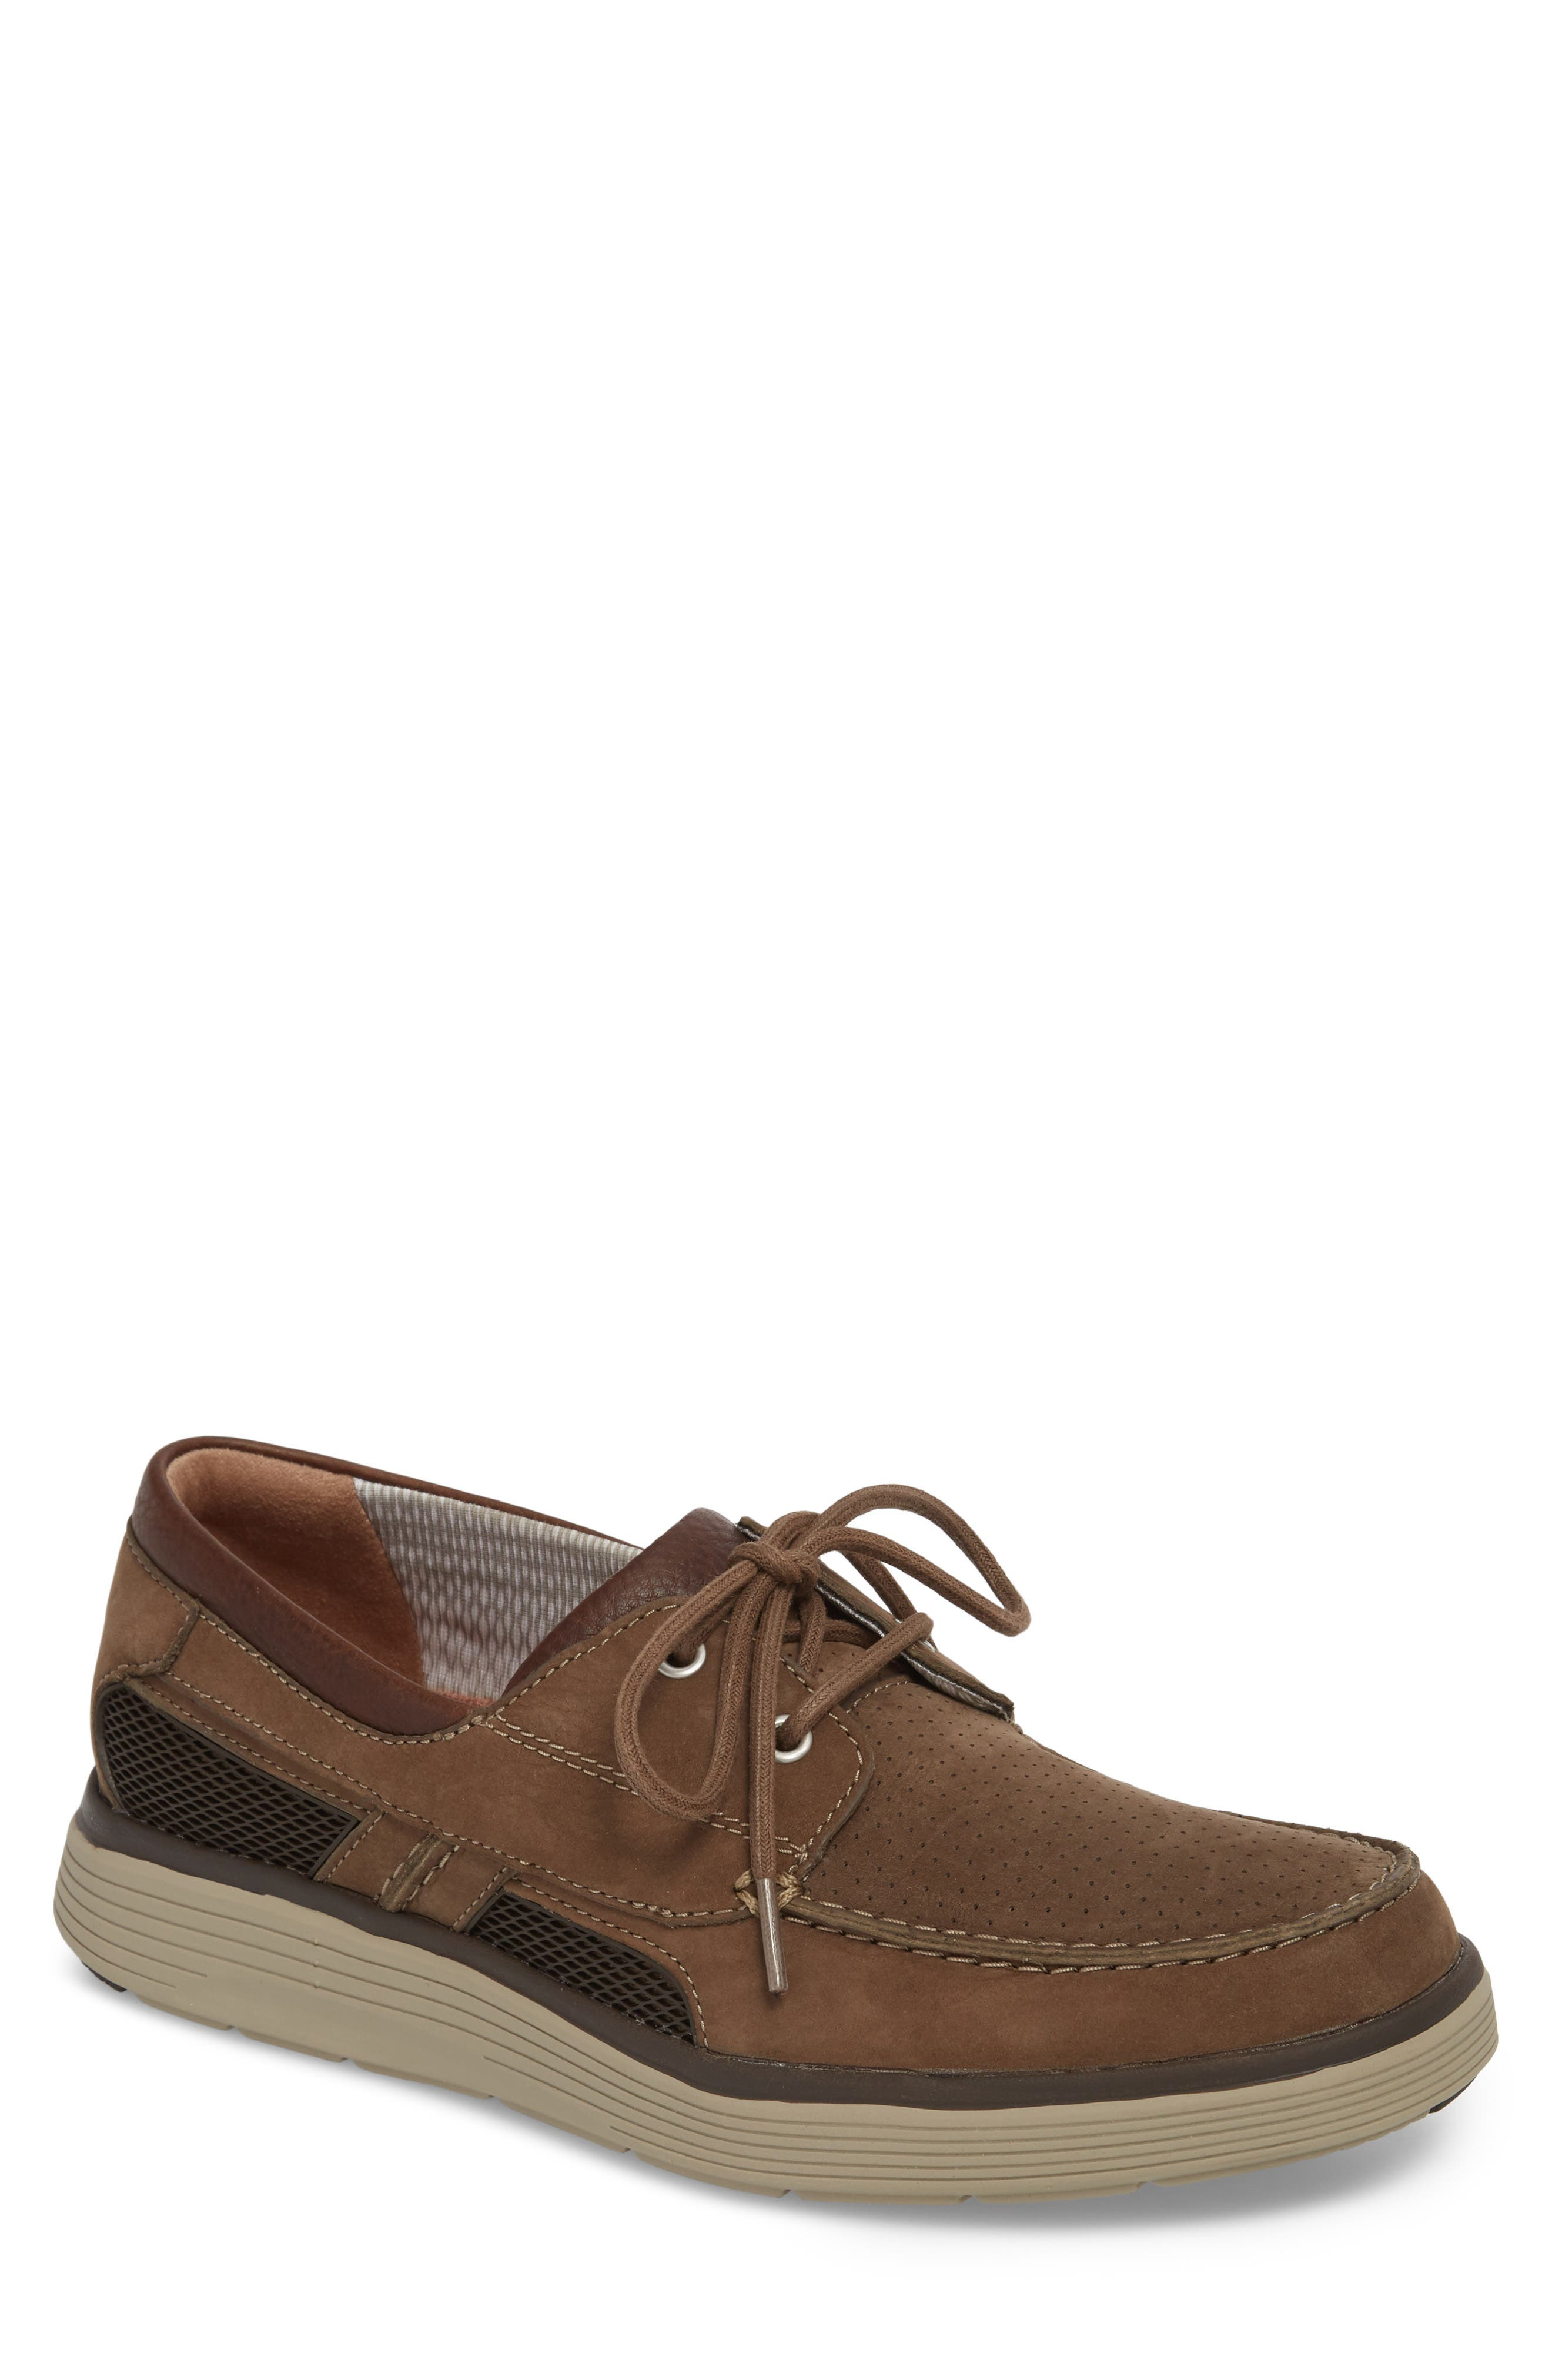 Clarks<sup>®</sup> Unabobe Step Boat Shoe,                         Main,                         color, Olive Nubuck